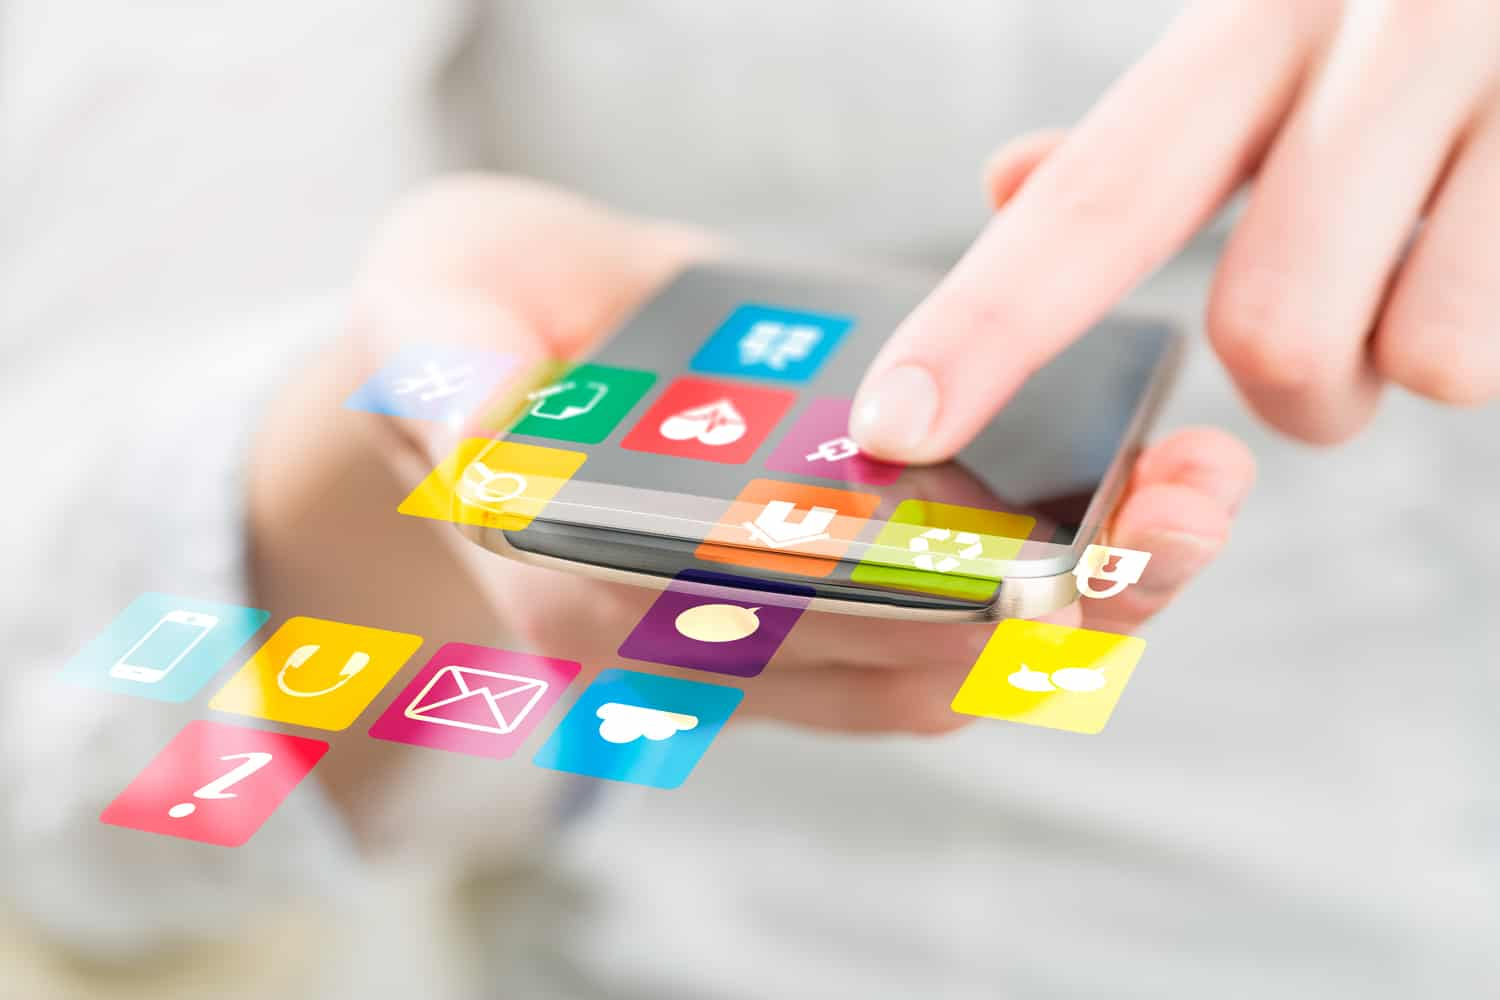 3 App Nightmares and the Need for Enhanced App Security